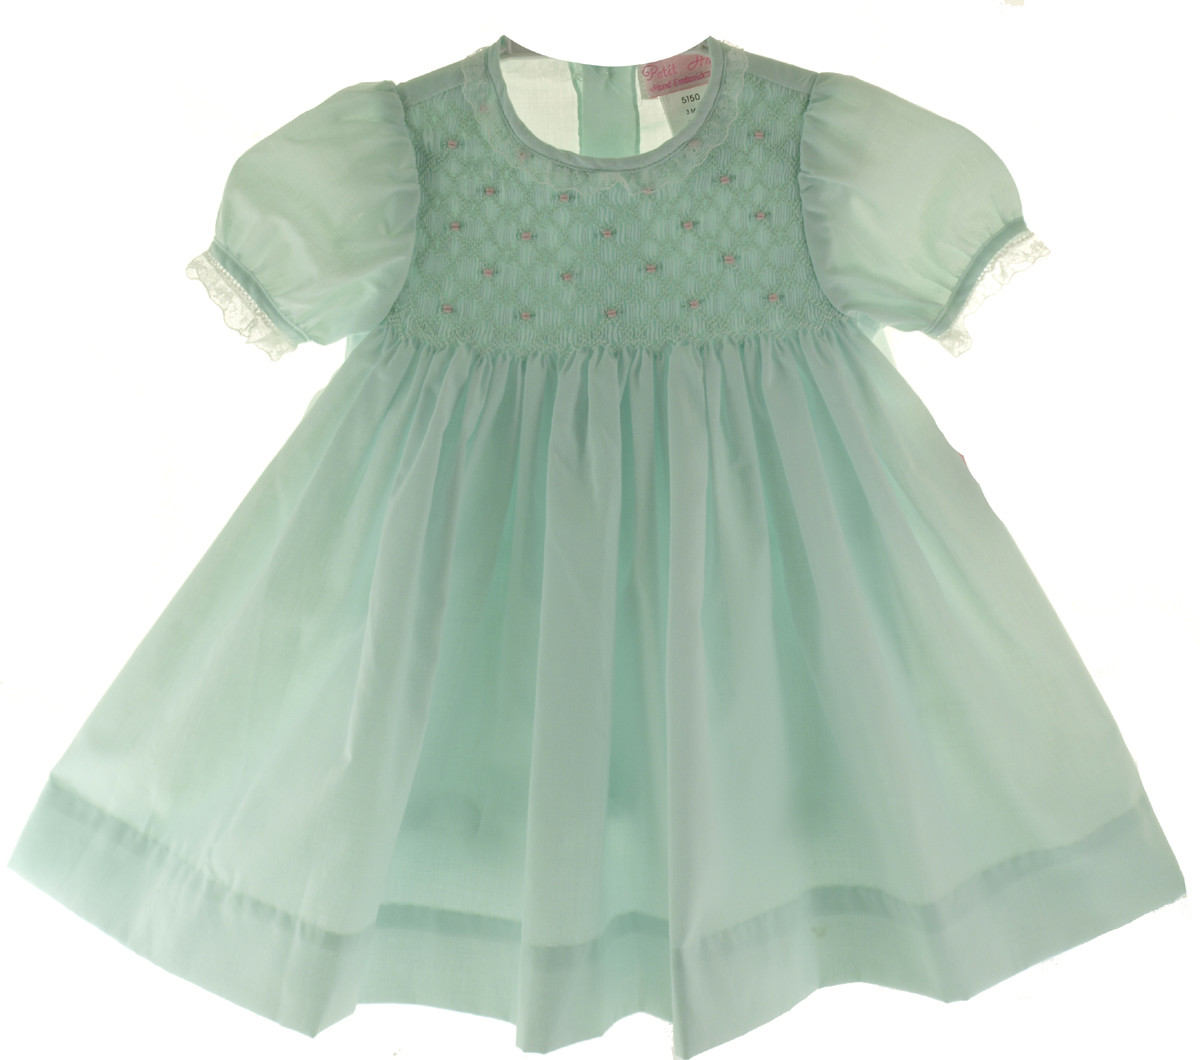 a974051d5 Petit Ami Infant Girls Mint Green Smocked Dress & Diaper Panty. Click to  enlarge